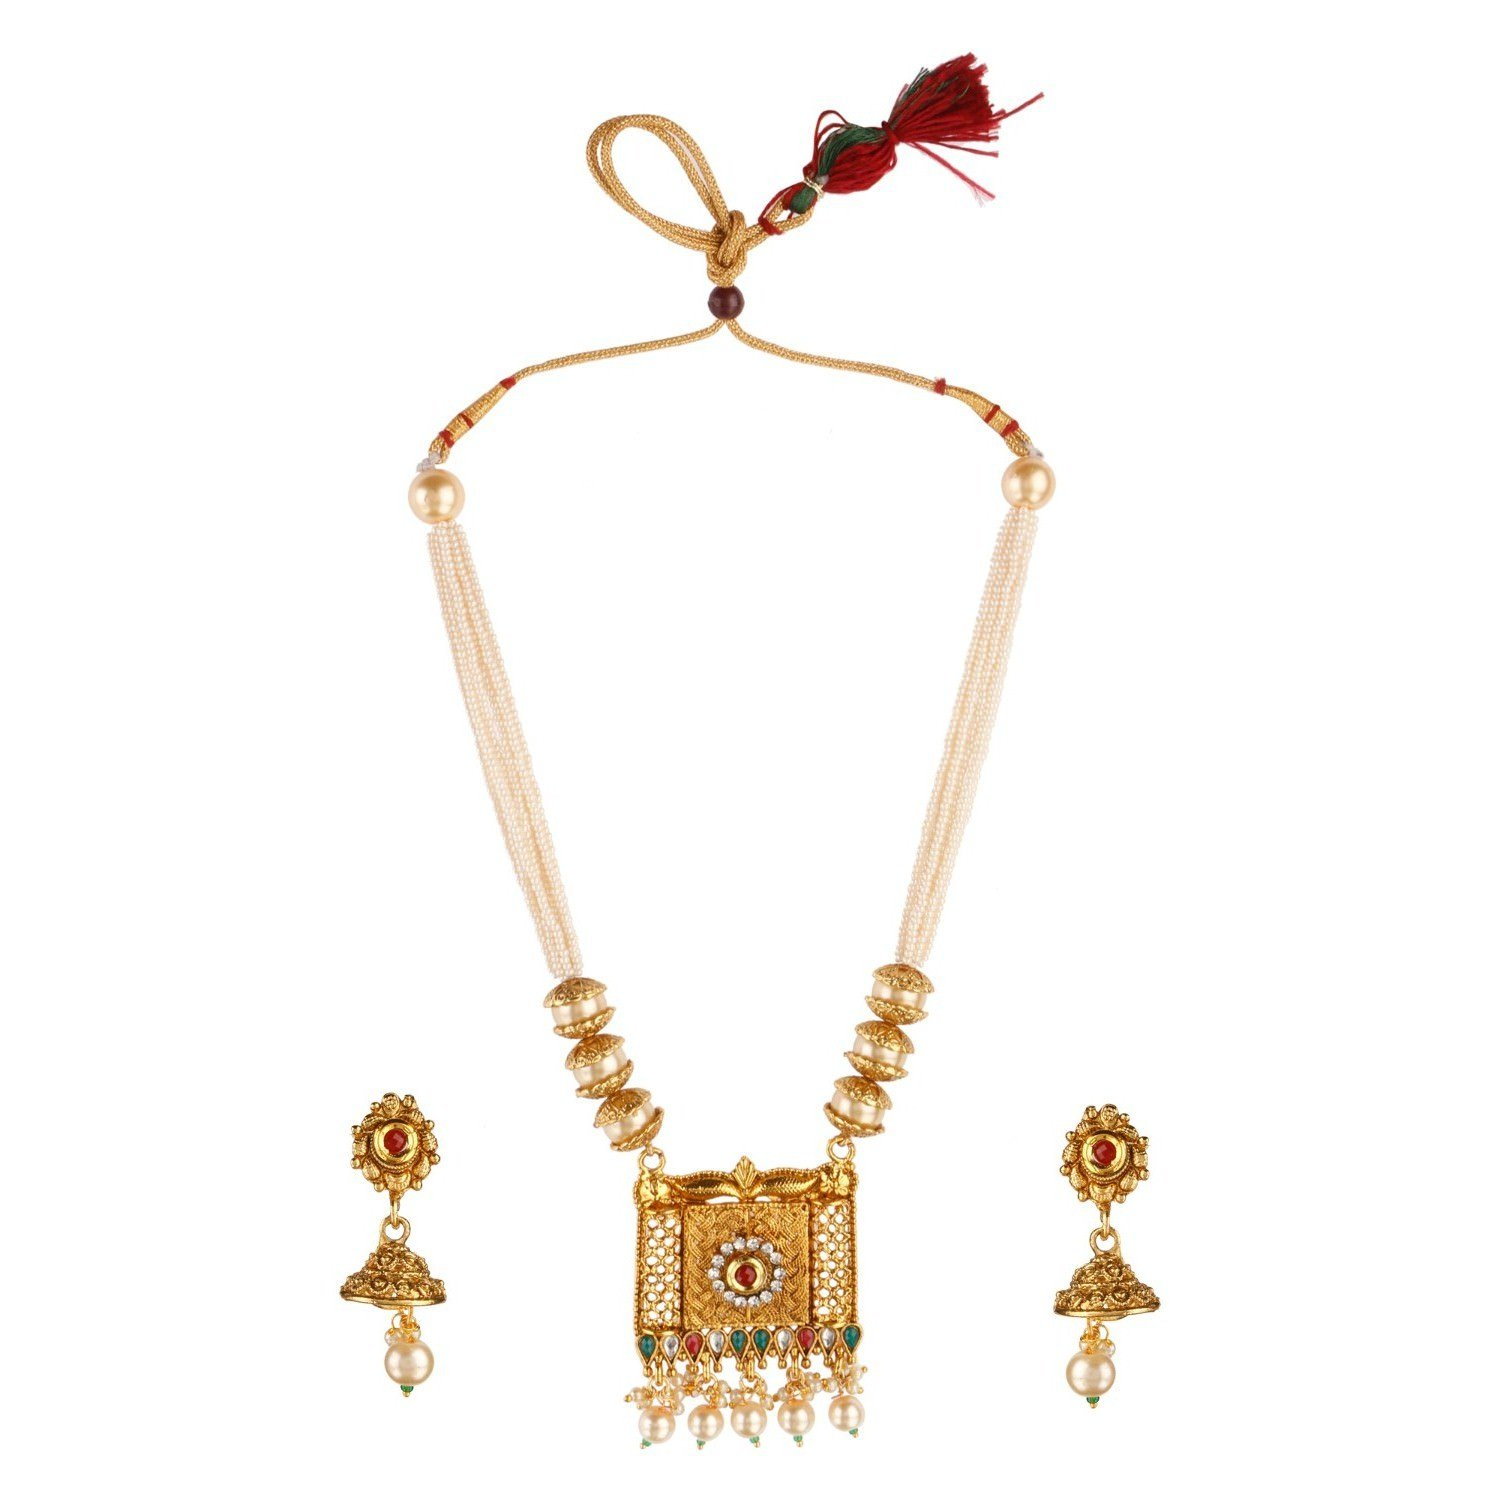 Efulgenz Indian Bollywood Traditional Floral 14 K Gold Plated Crystal Kundan Pearl Wedding Temple Necklace Earrings Jewelry Set